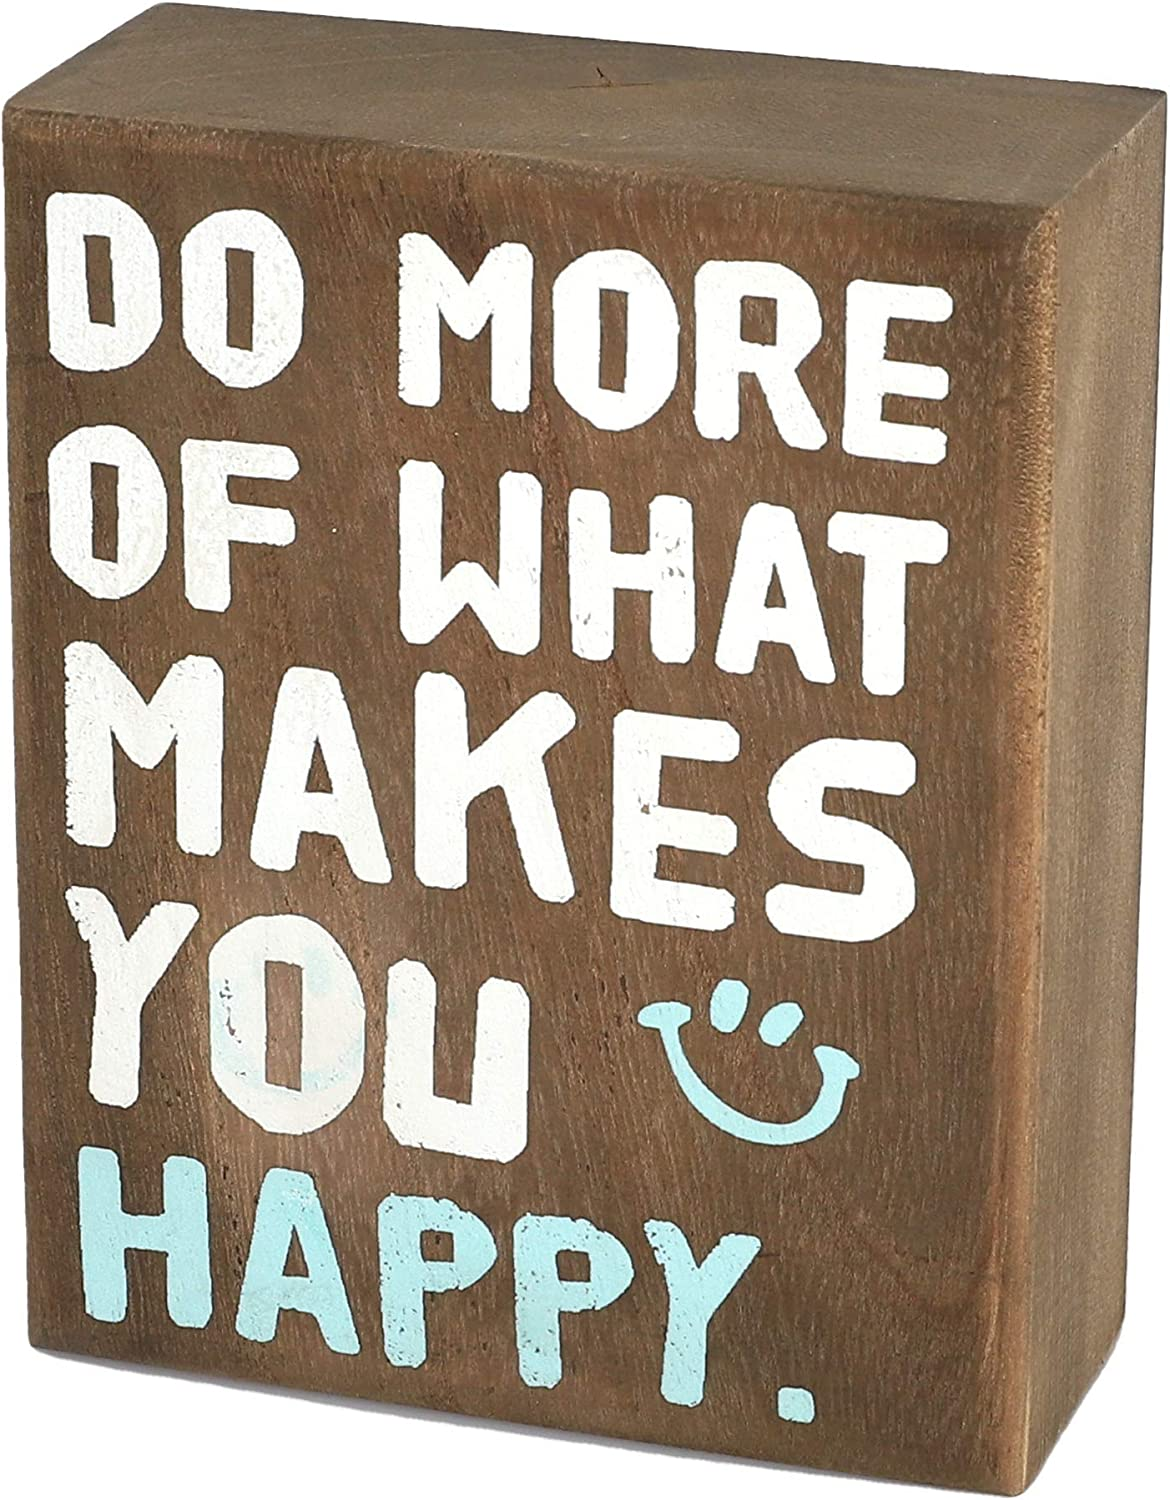 whoaon Rustic Wood Box Signs, Makes You Happy, 4 x 5 inches, Inspirational Tabletop Display, Small Wooden Signs for Home Decor